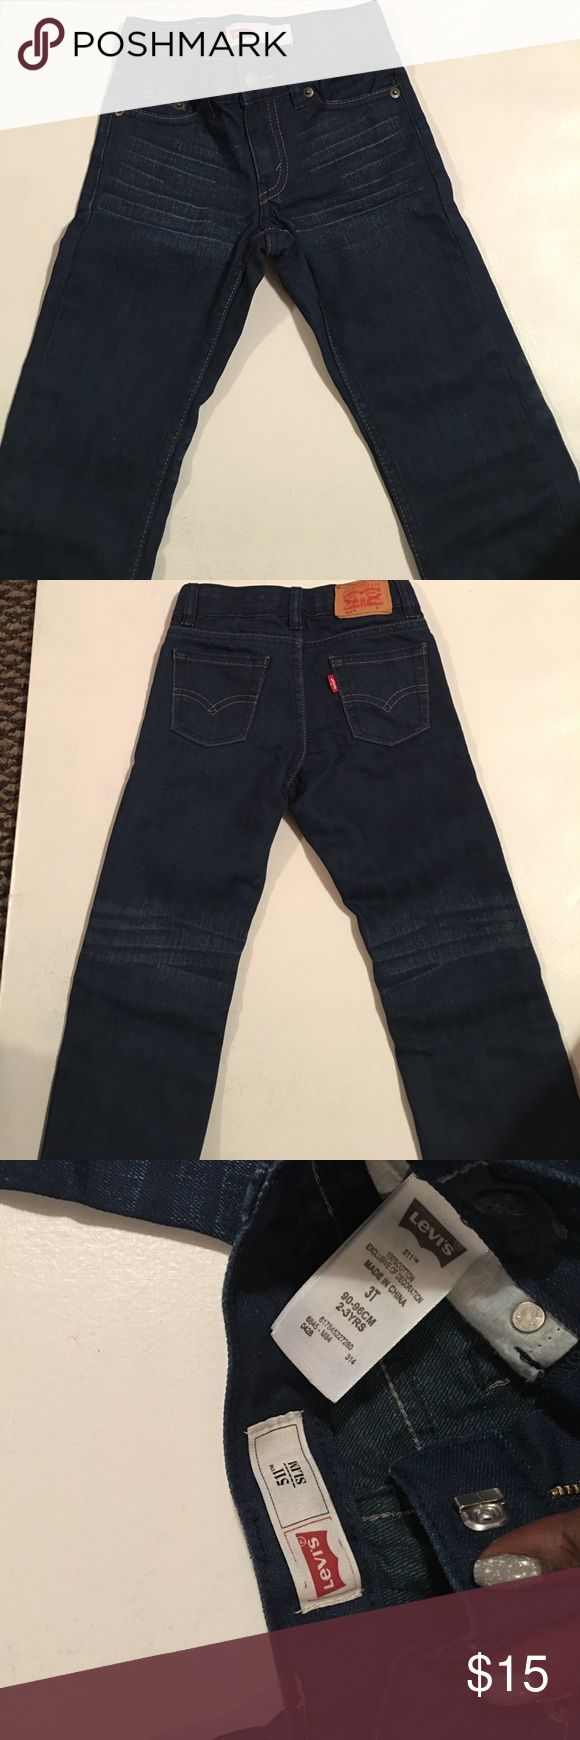 Levi's 511 slim jean. Gray condition Jeans with cool distress. Great condition Levi's Bottoms Jeans